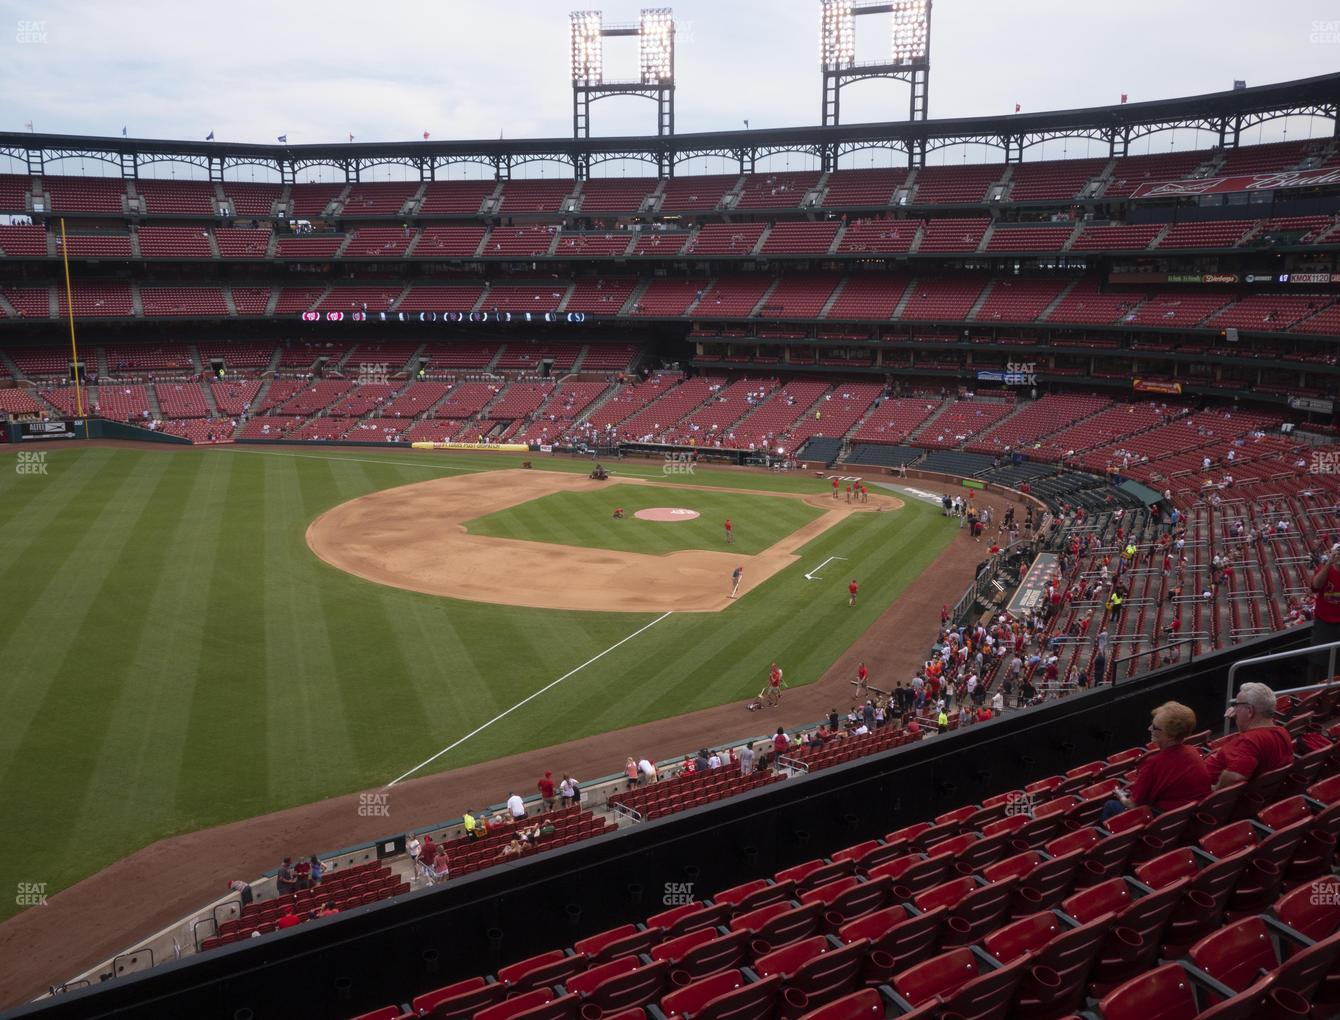 St. Louis Cardinals at Busch Stadium Left Field Loge 267 View